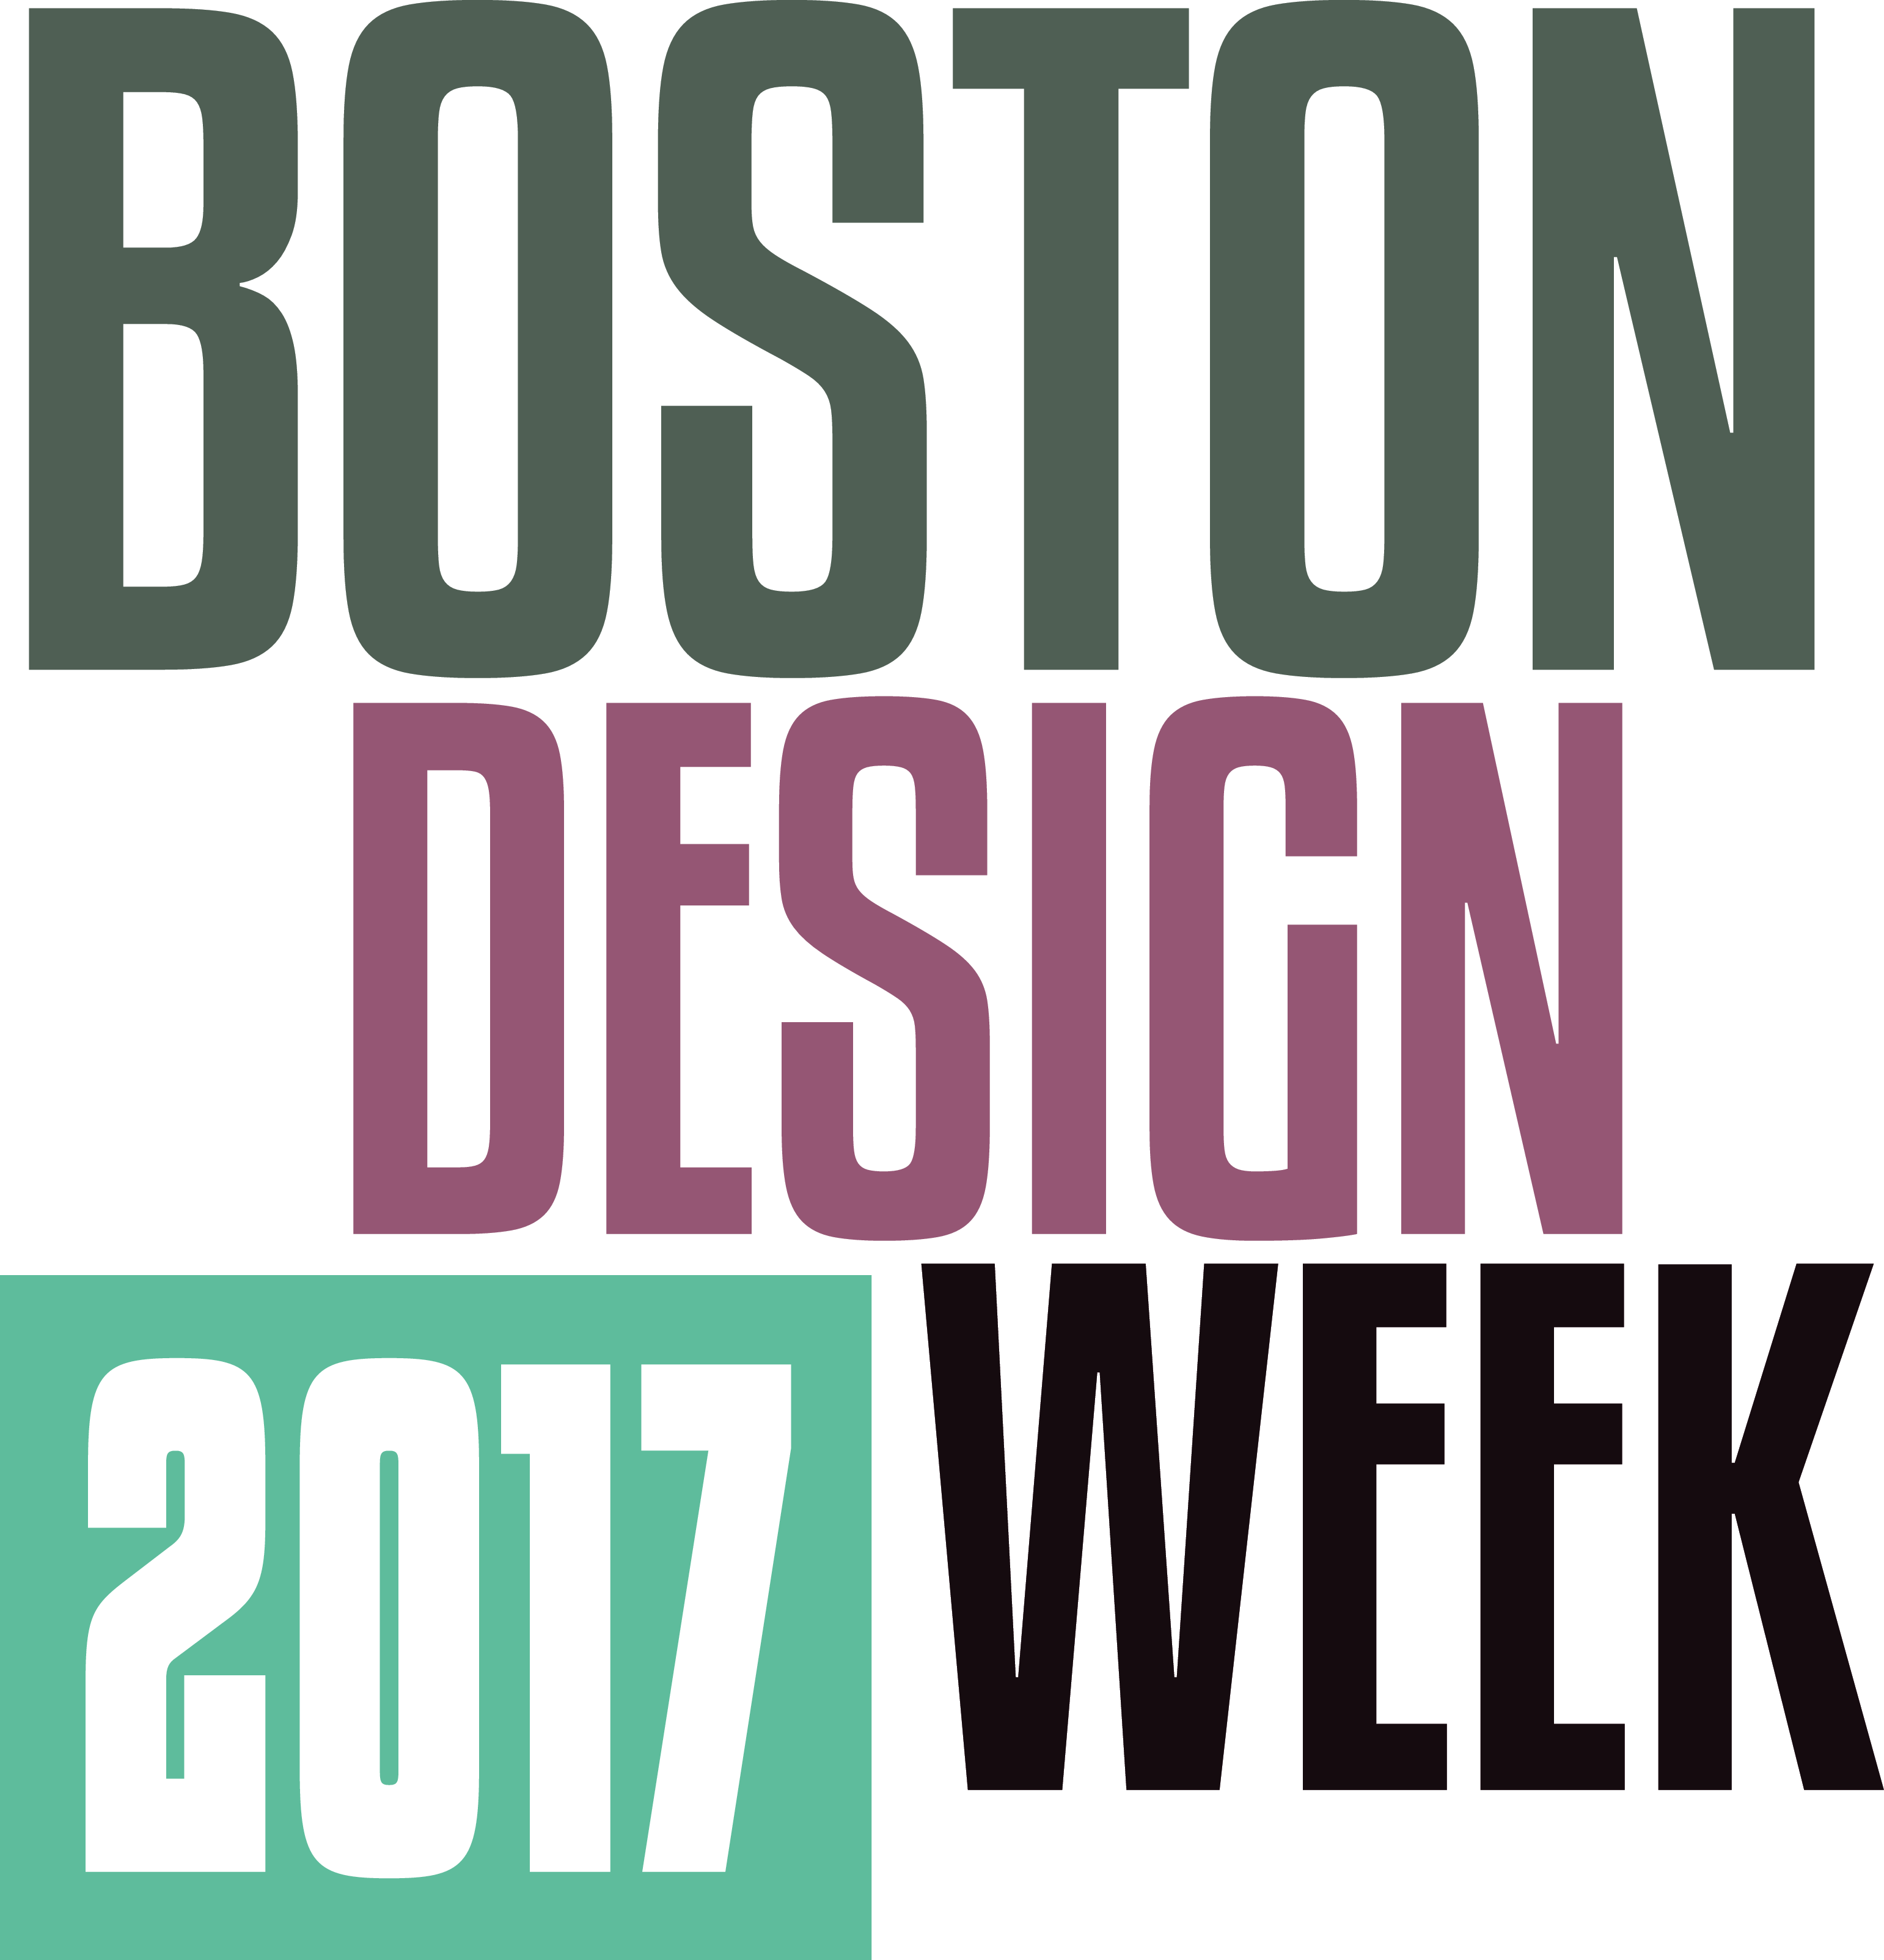 Join us for Boston Design Week 2017